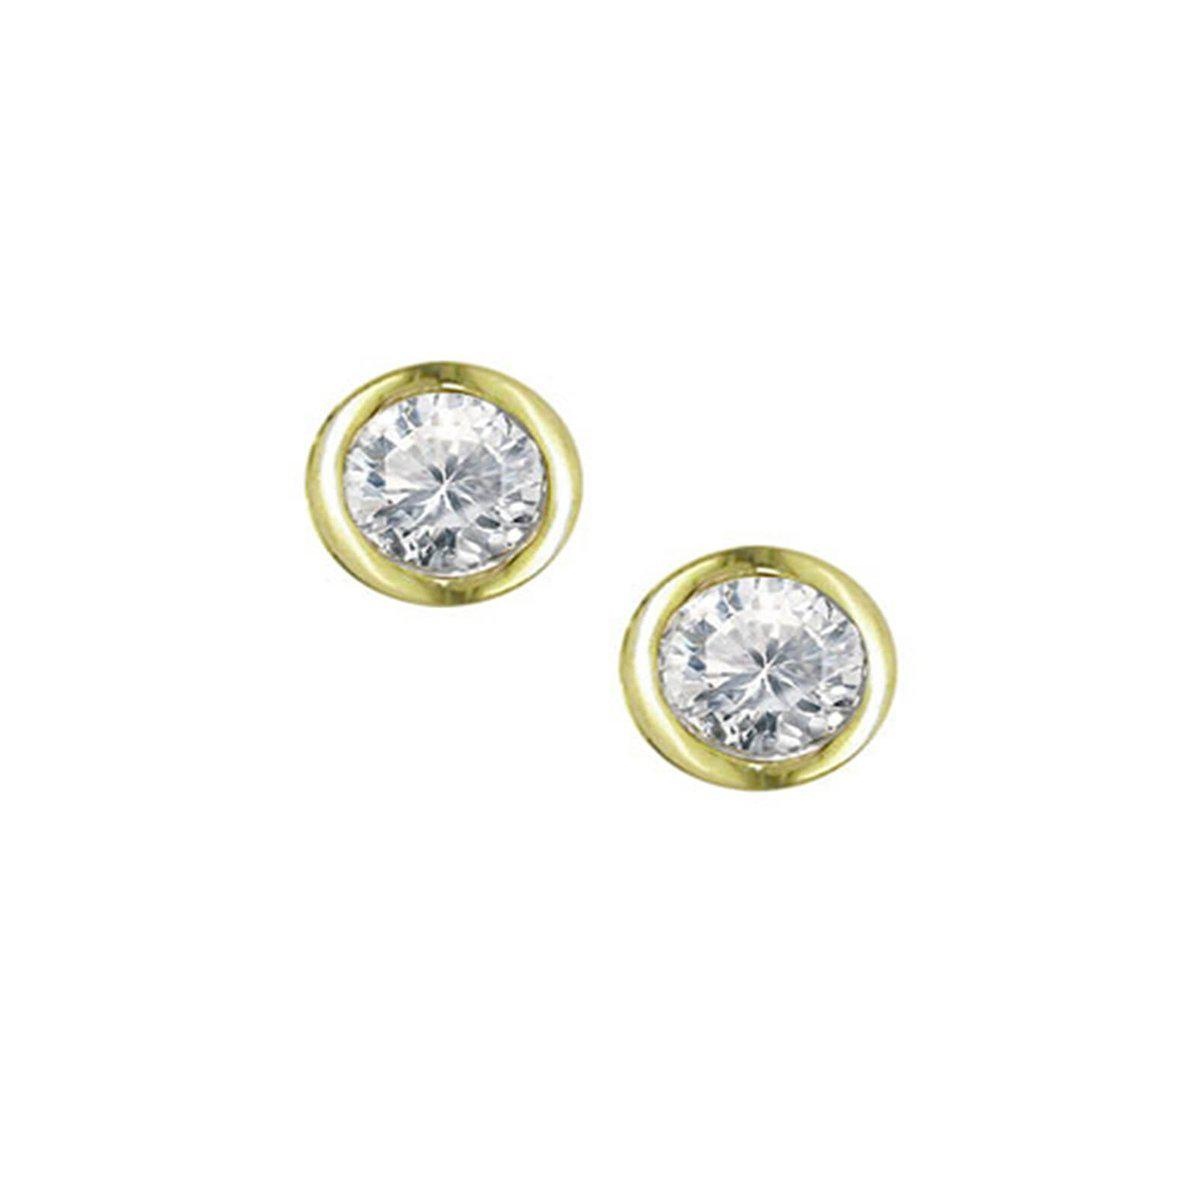 London Road Jewellery Yellow Gold Diamond Solitaire Raindrop Earrings UUb928e